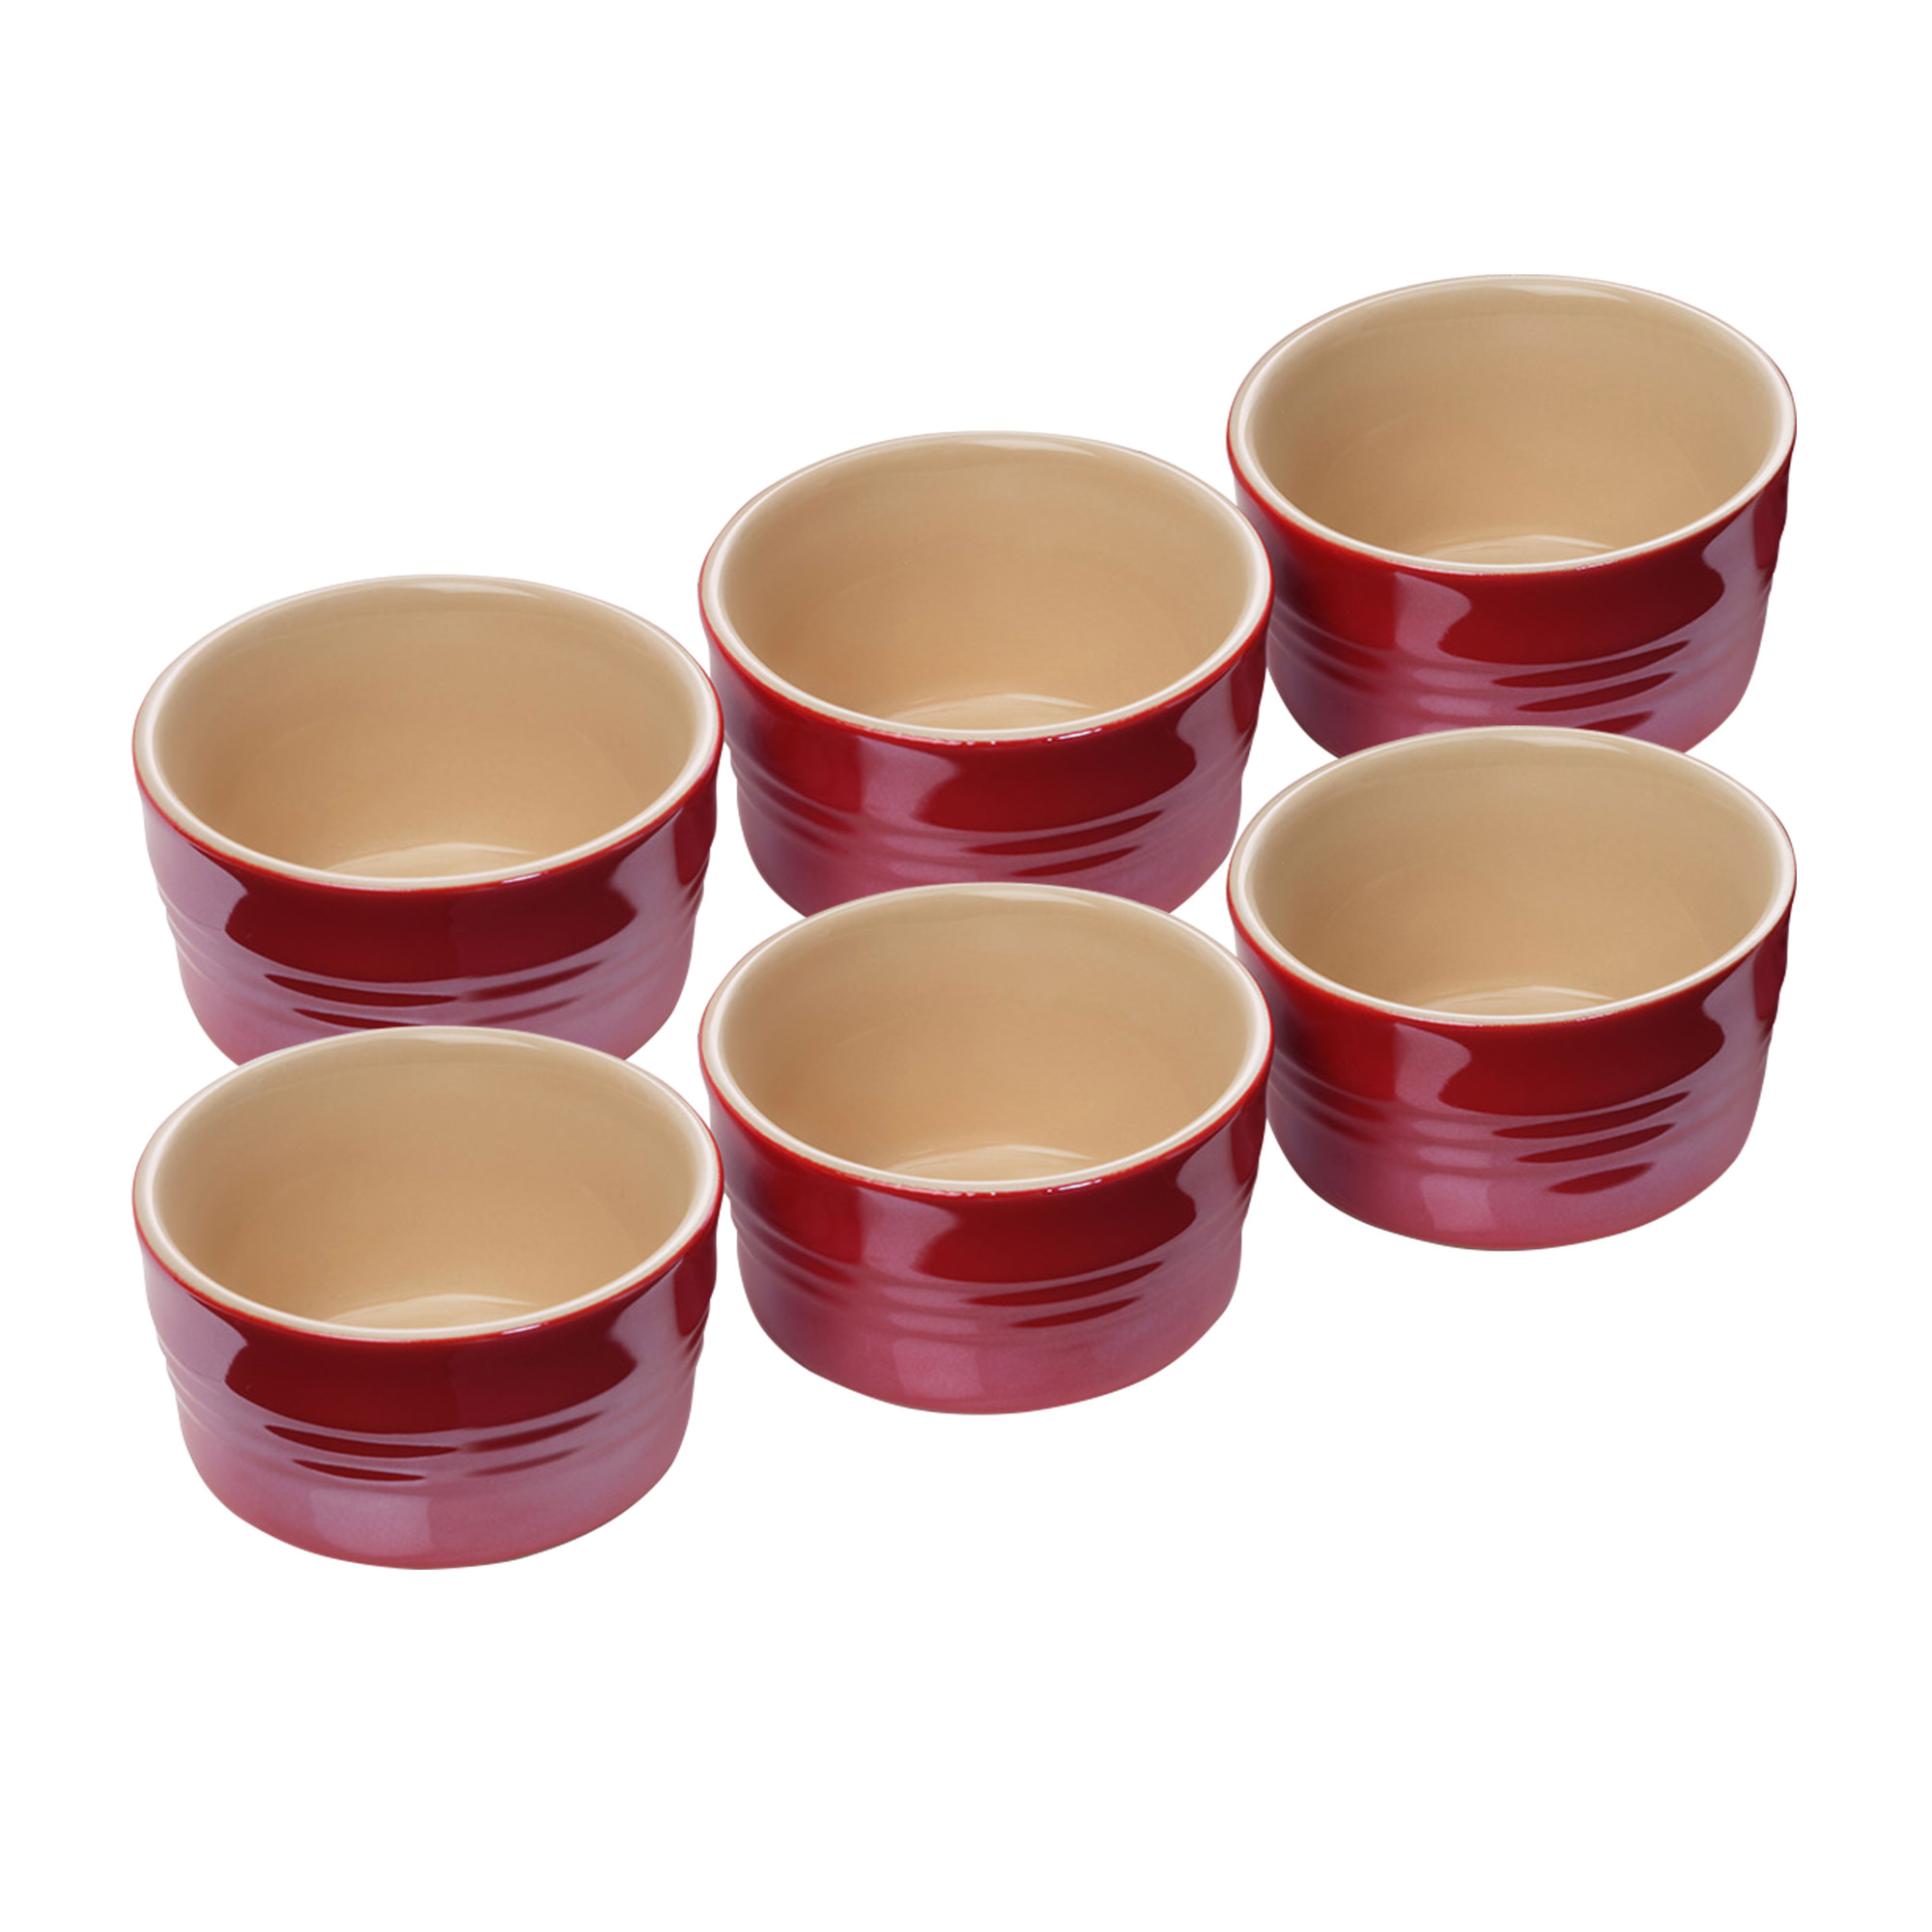 Le Creuset Stoneware 6pc Mini Ramekin Set Metallic Light Cerise